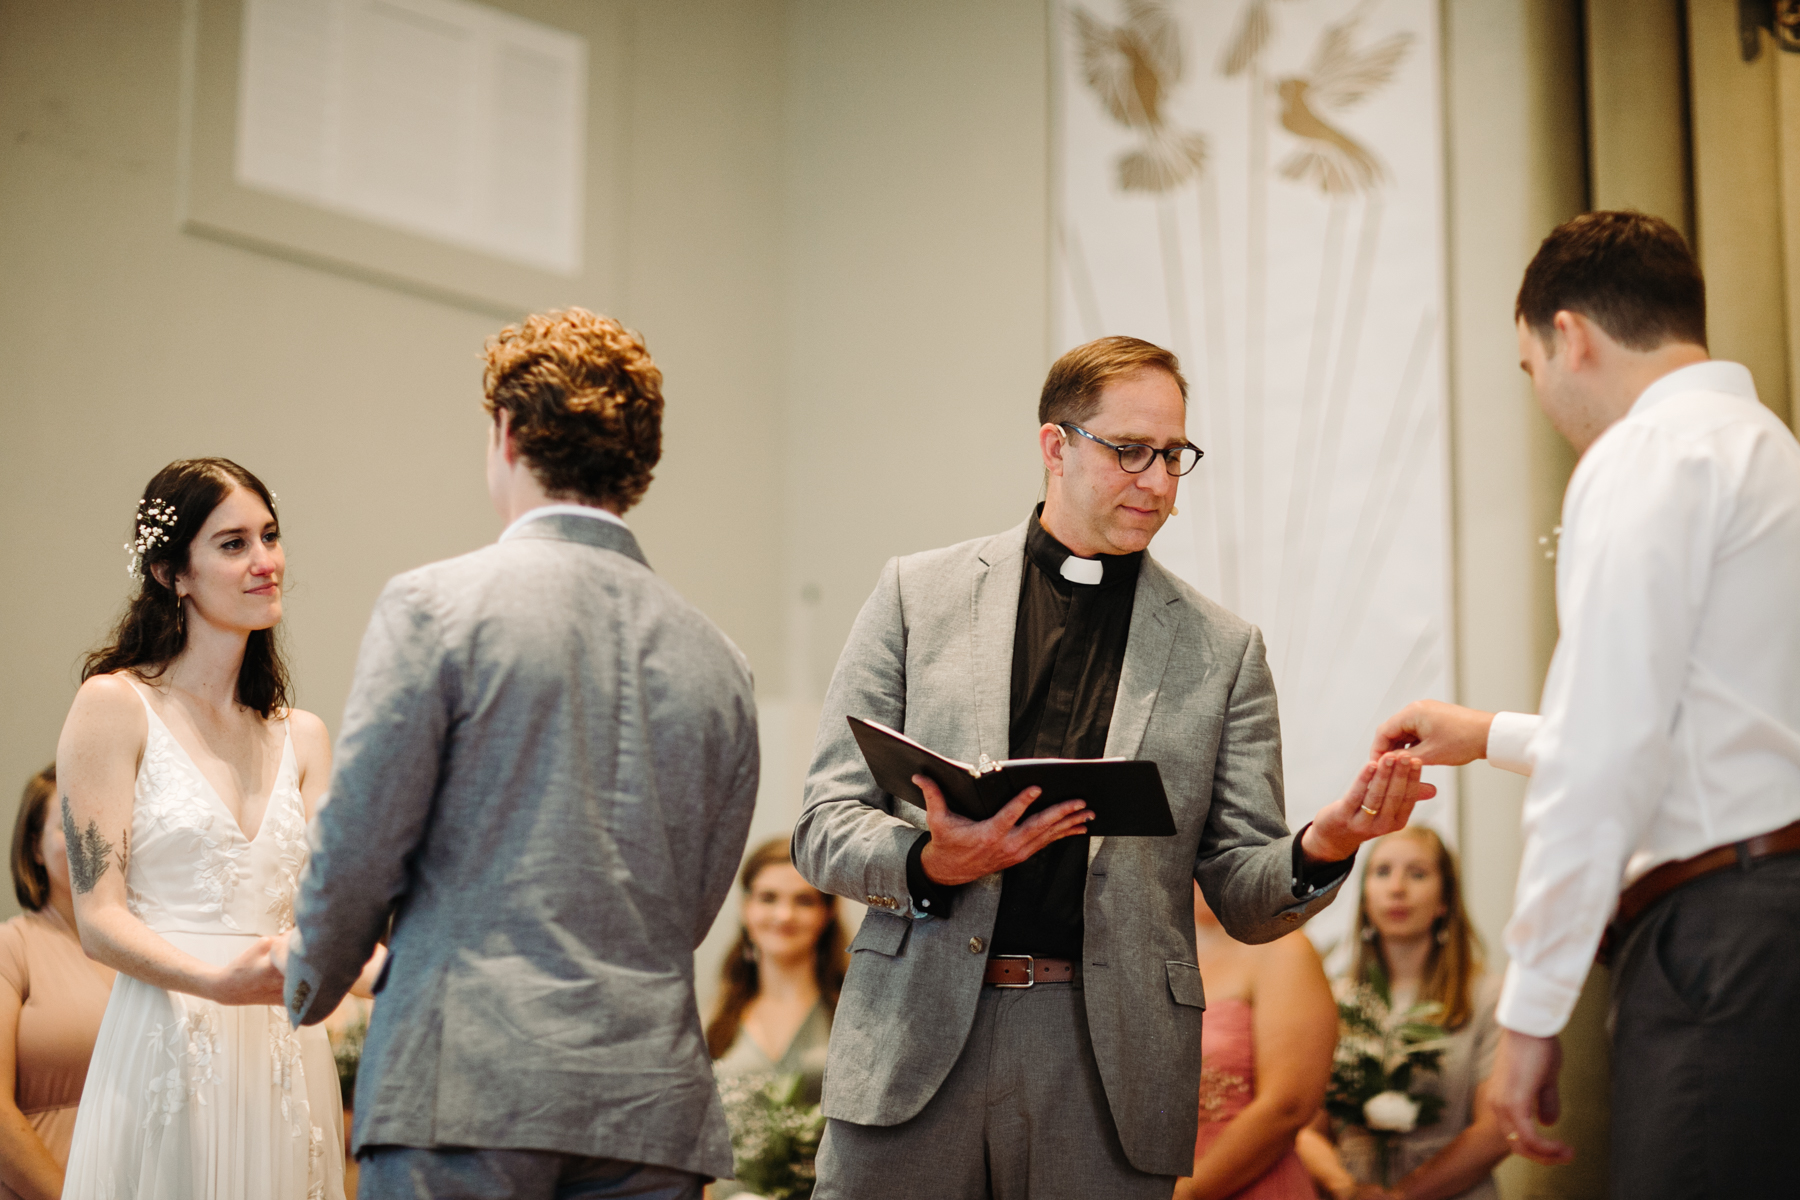 Pastor giving the rings during a downtown knoxville wedding at redeemer church